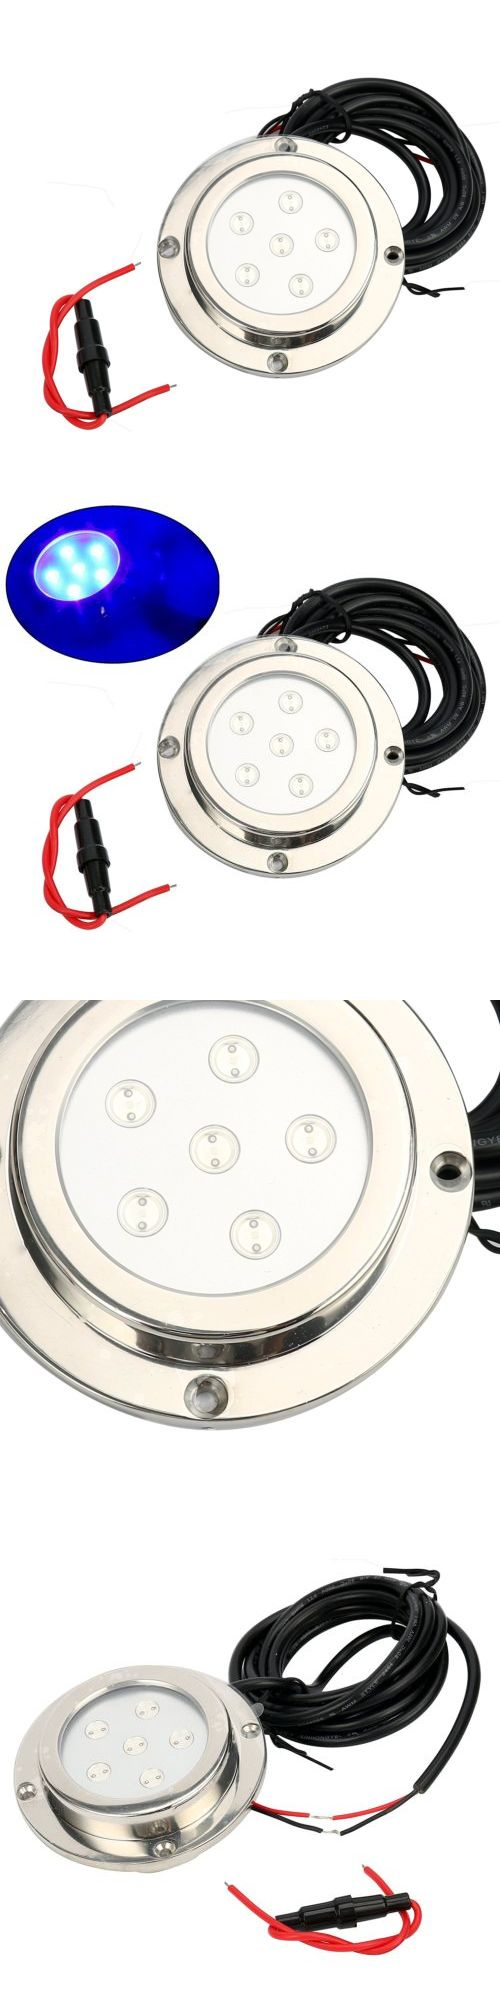 boat parts: 6*1W, Stainless Steel, Underwater Boat Marine Led Light Blue Colorus Free Ship BUY IT NOW ONLY: $55.49